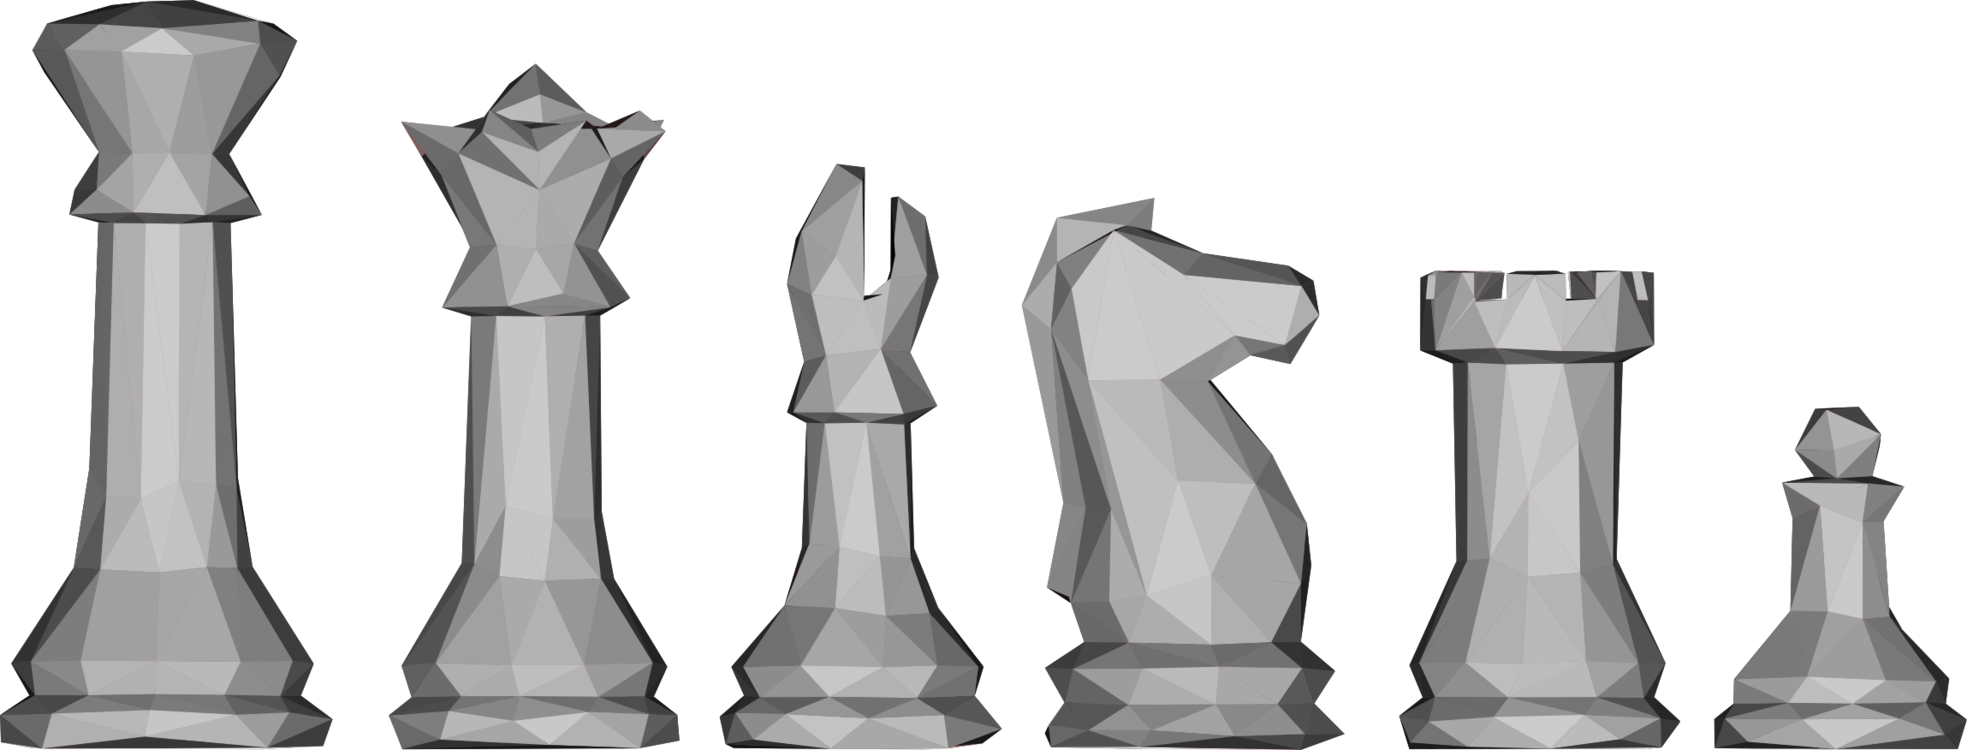 Tabletop Game,Chessboard,Board Game